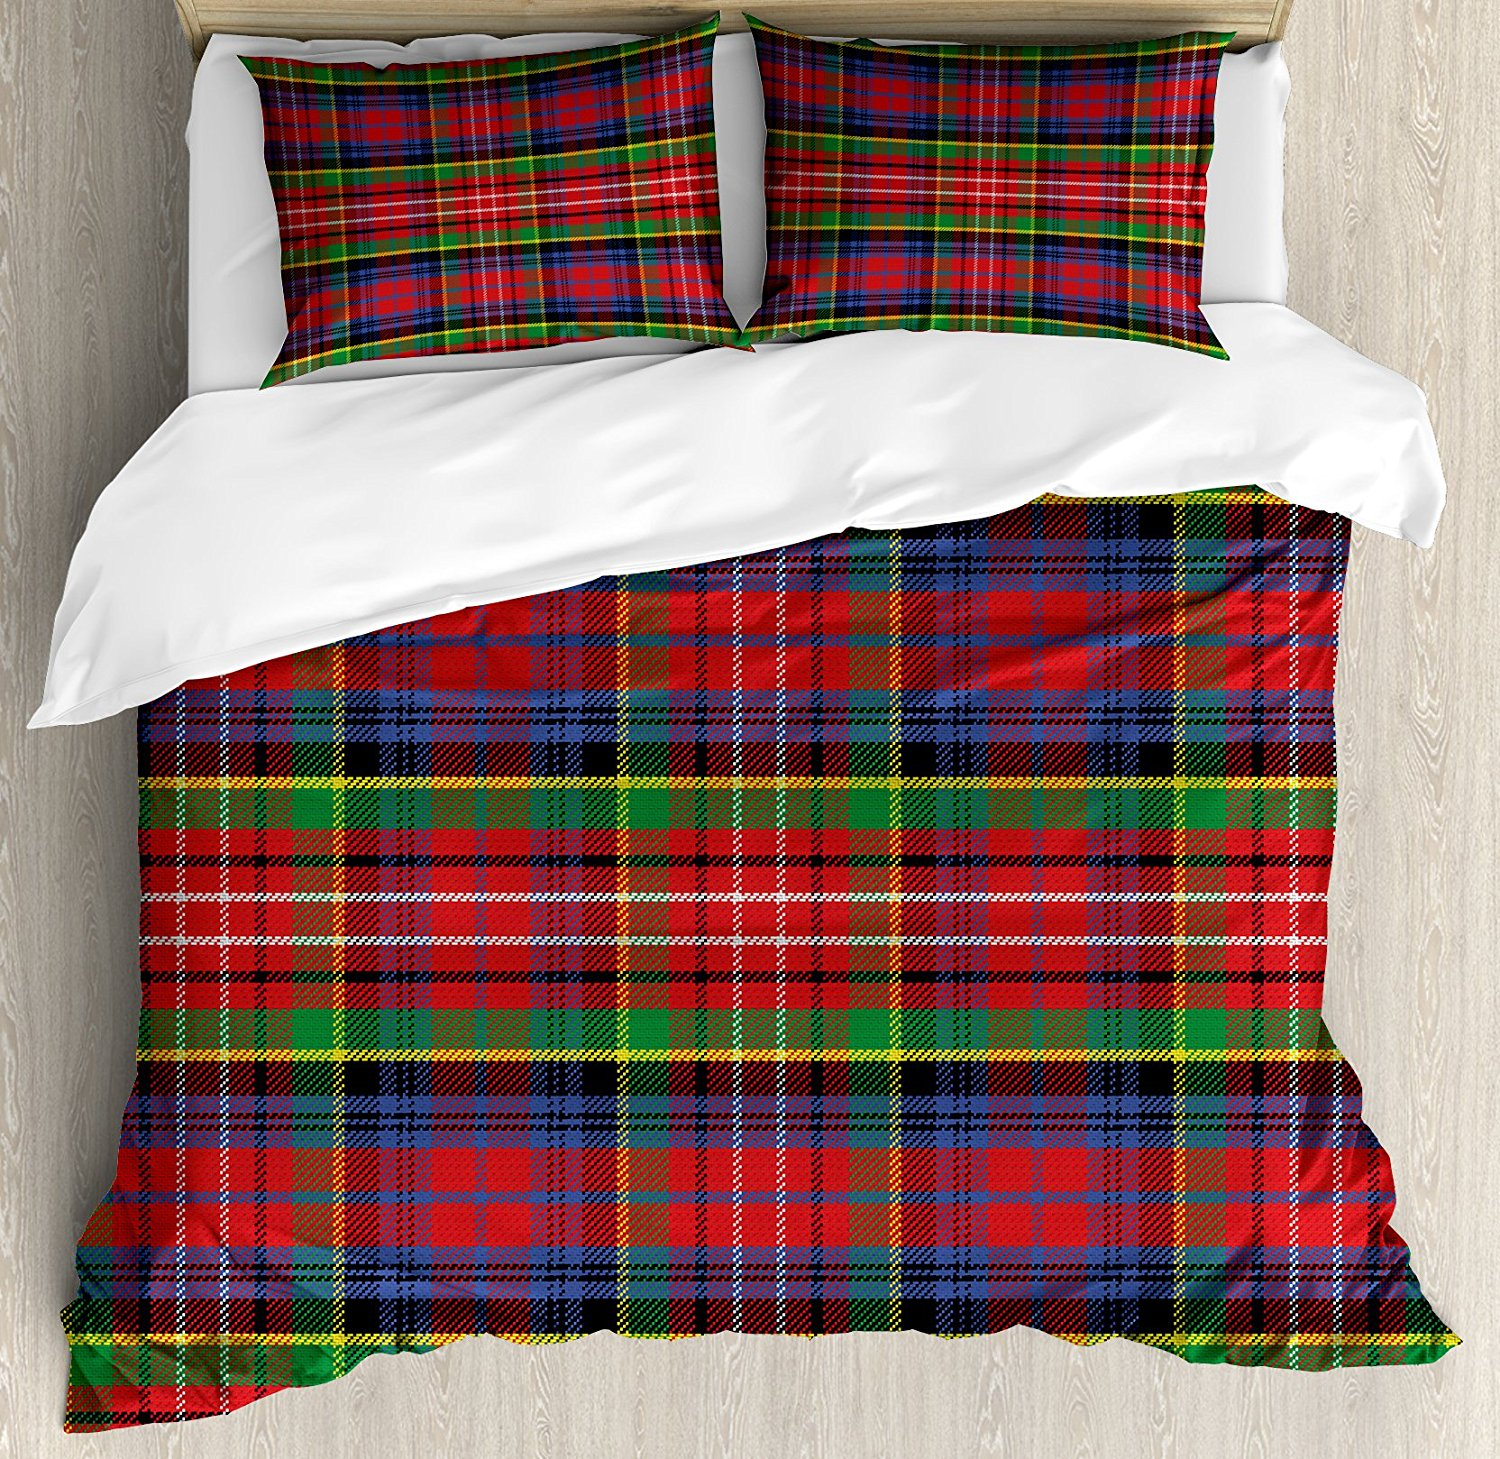 black for grey bedding amazing blue covers plaid and super duvet cover full king comforters guys red comforter